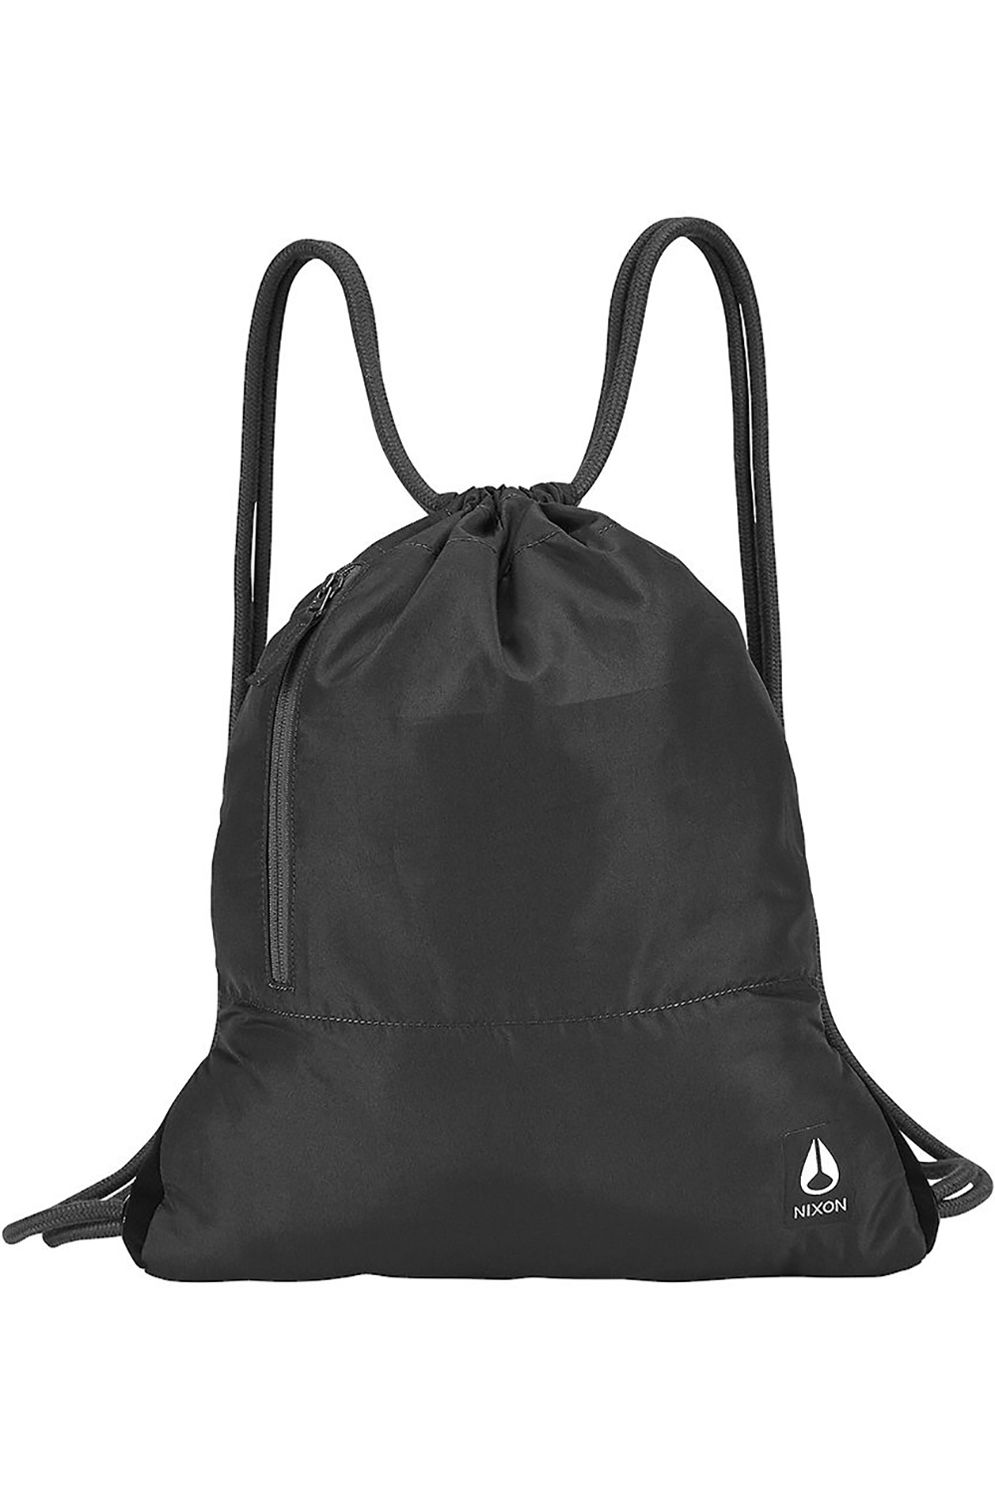 Mala Nixon Everyday Cinch Bag II All Black